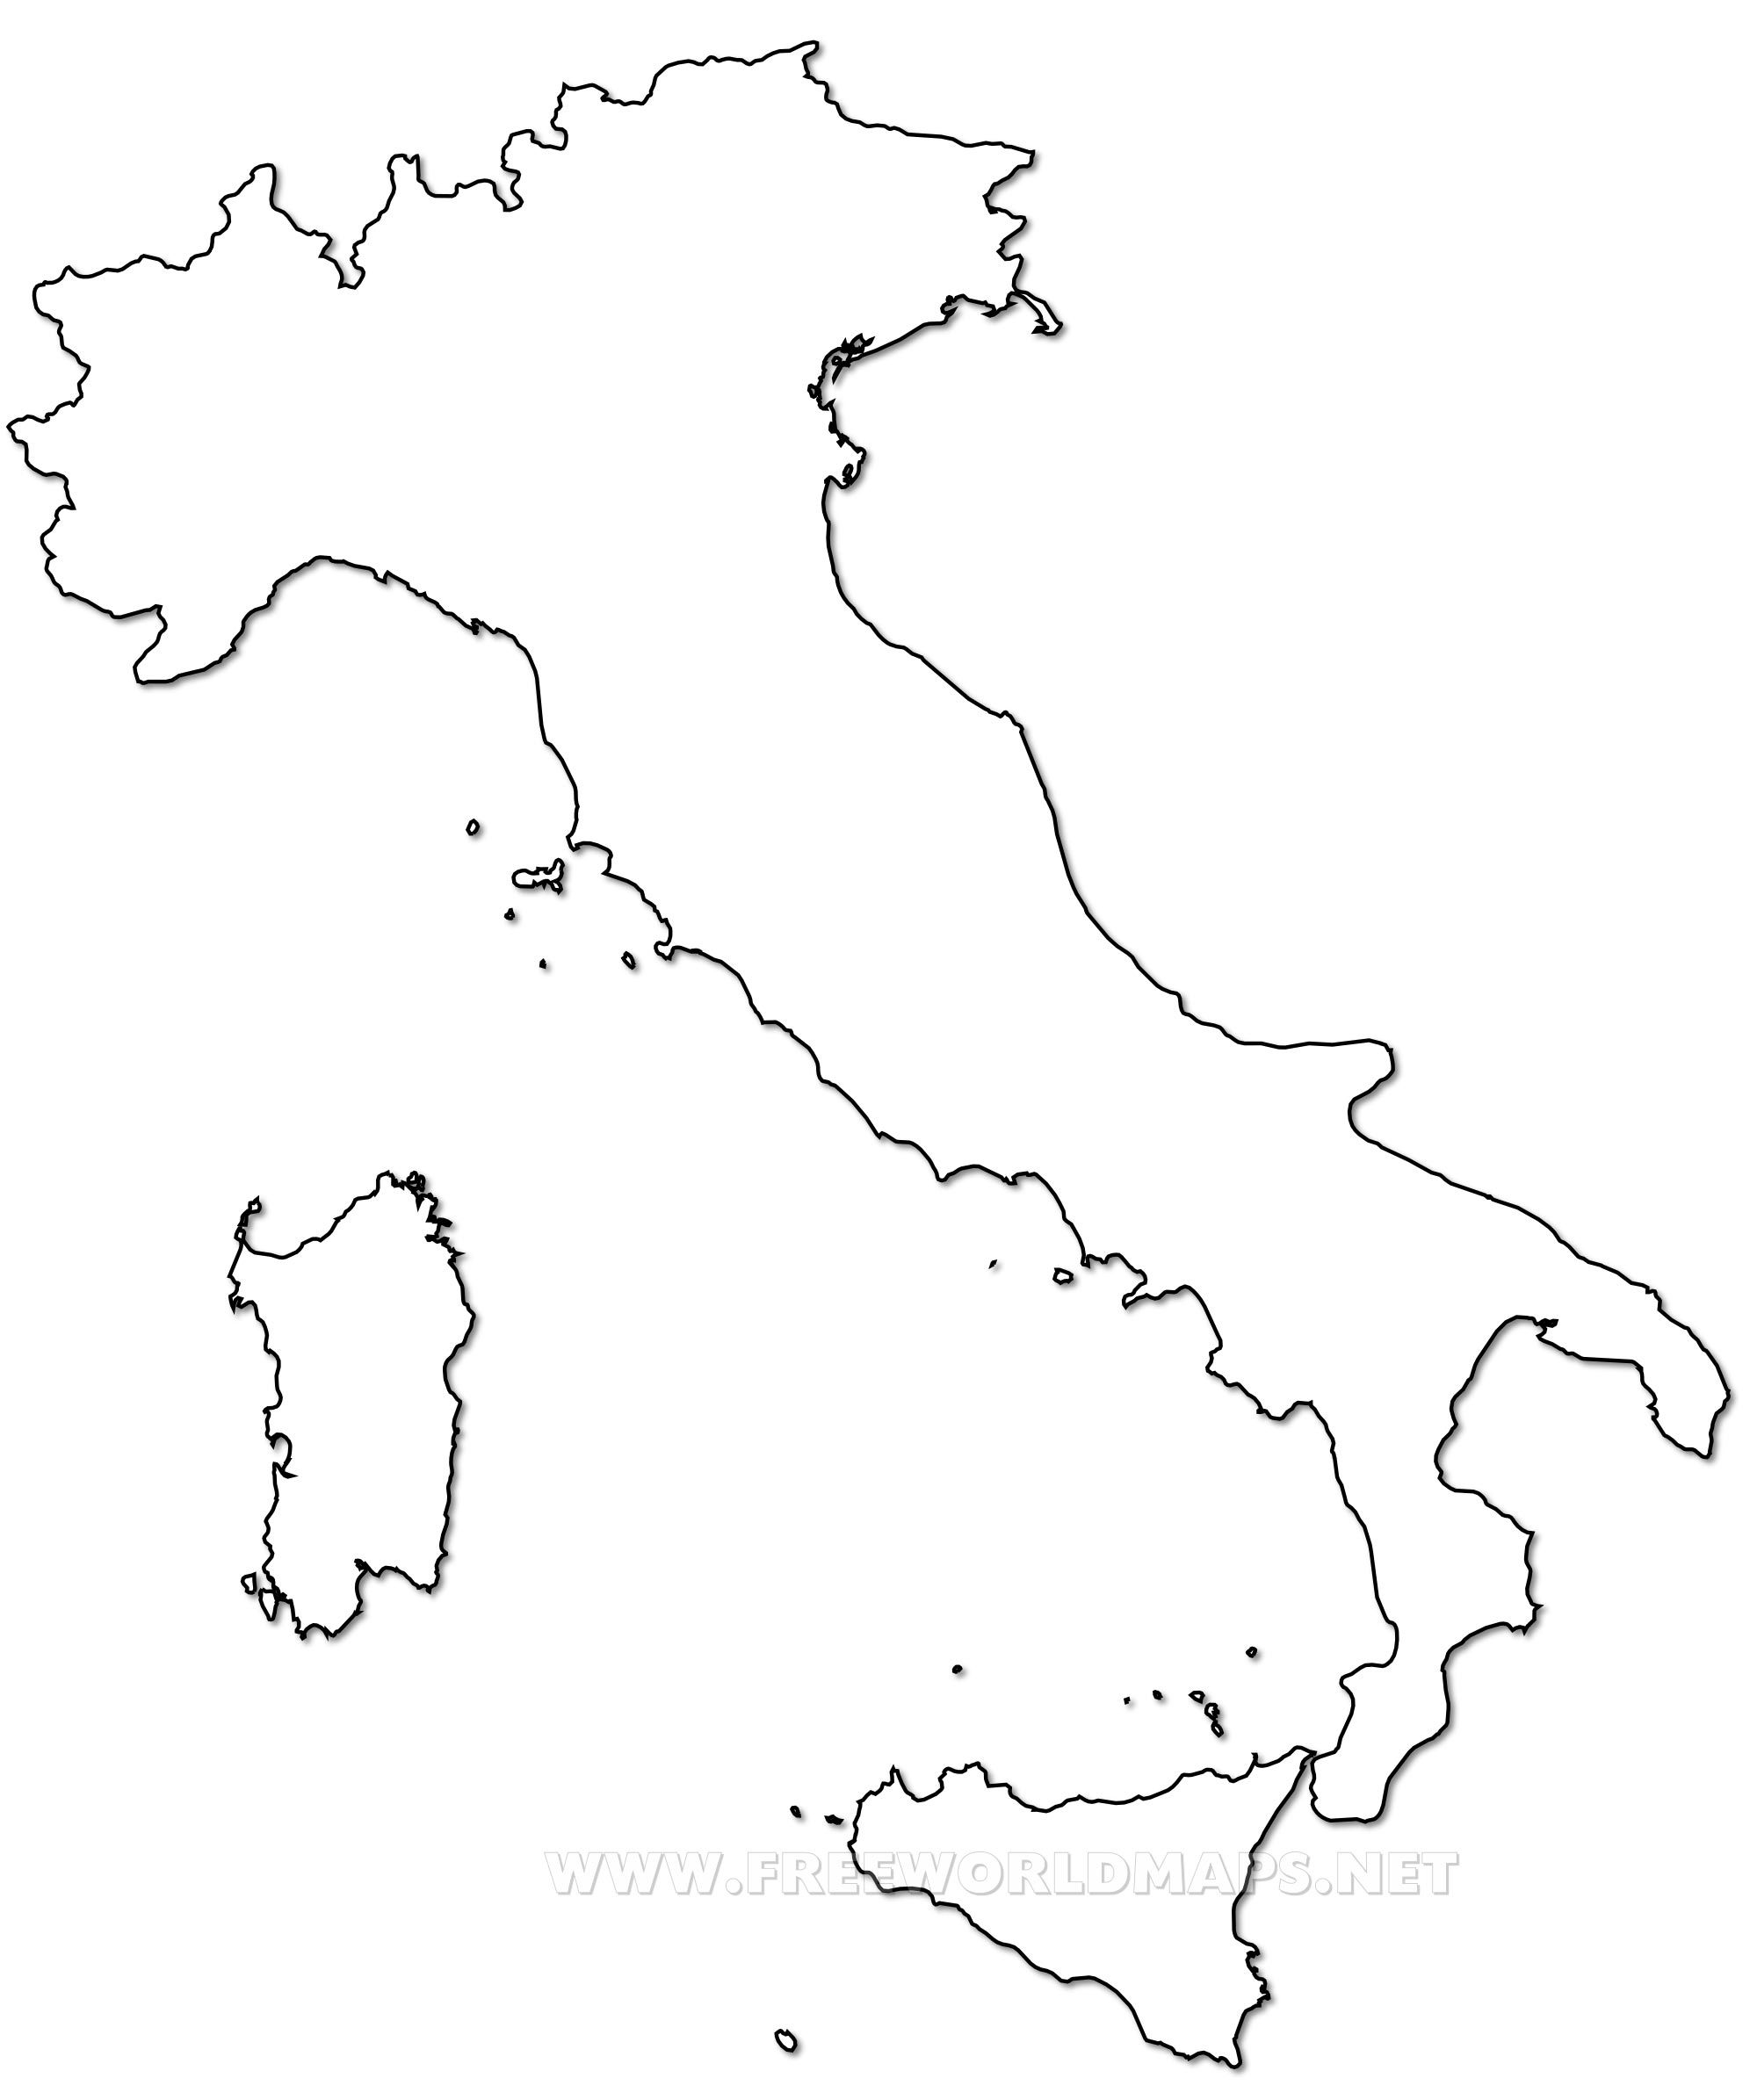 Italy map outline.